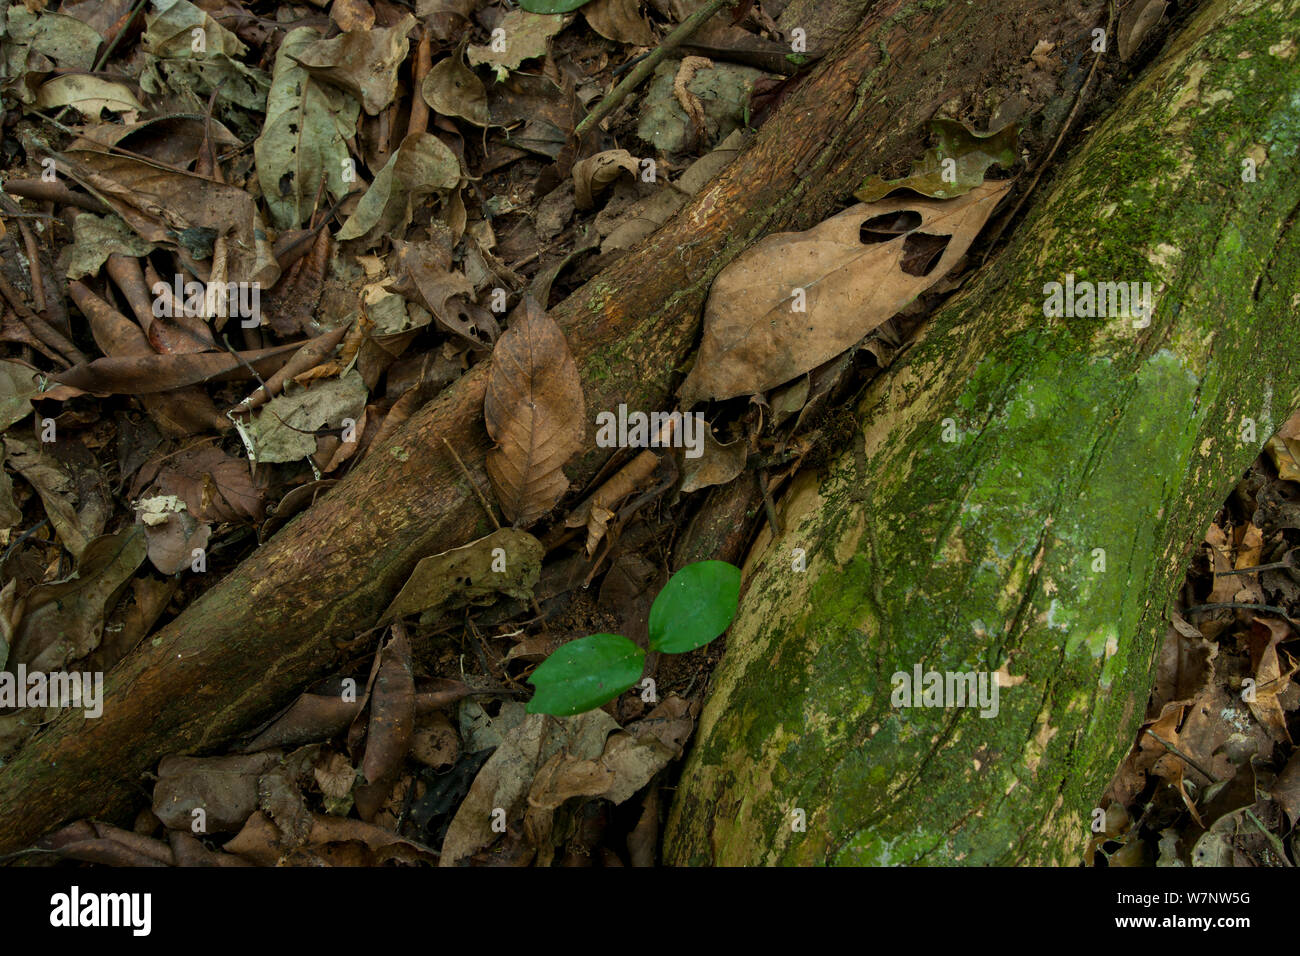 'Bodaba' leaf (Grossera macrantha) nestled against Strangler Fig tree root system and a 'Babango' seedling (Diospyros bipindensis or iturensis) Bai Hokou, Dzanga-Ndoki National Park, Central African Republic. Stock Photo